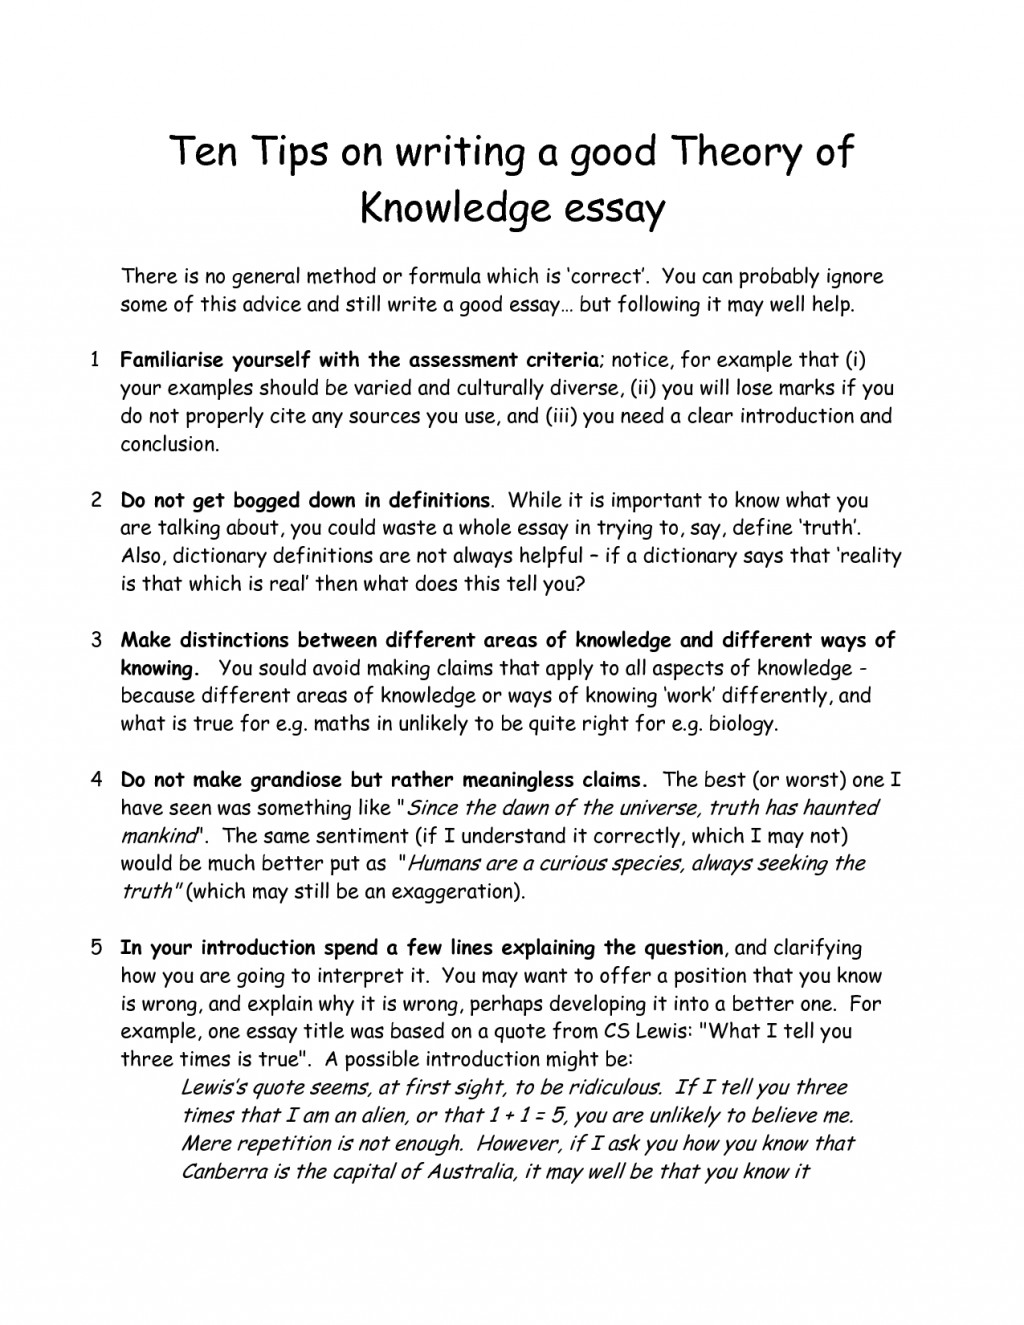 003 Qqllg0v8ct Essay Example How To Write About Singular A Yourself Narrative Short Myself Paper Without Using I Large